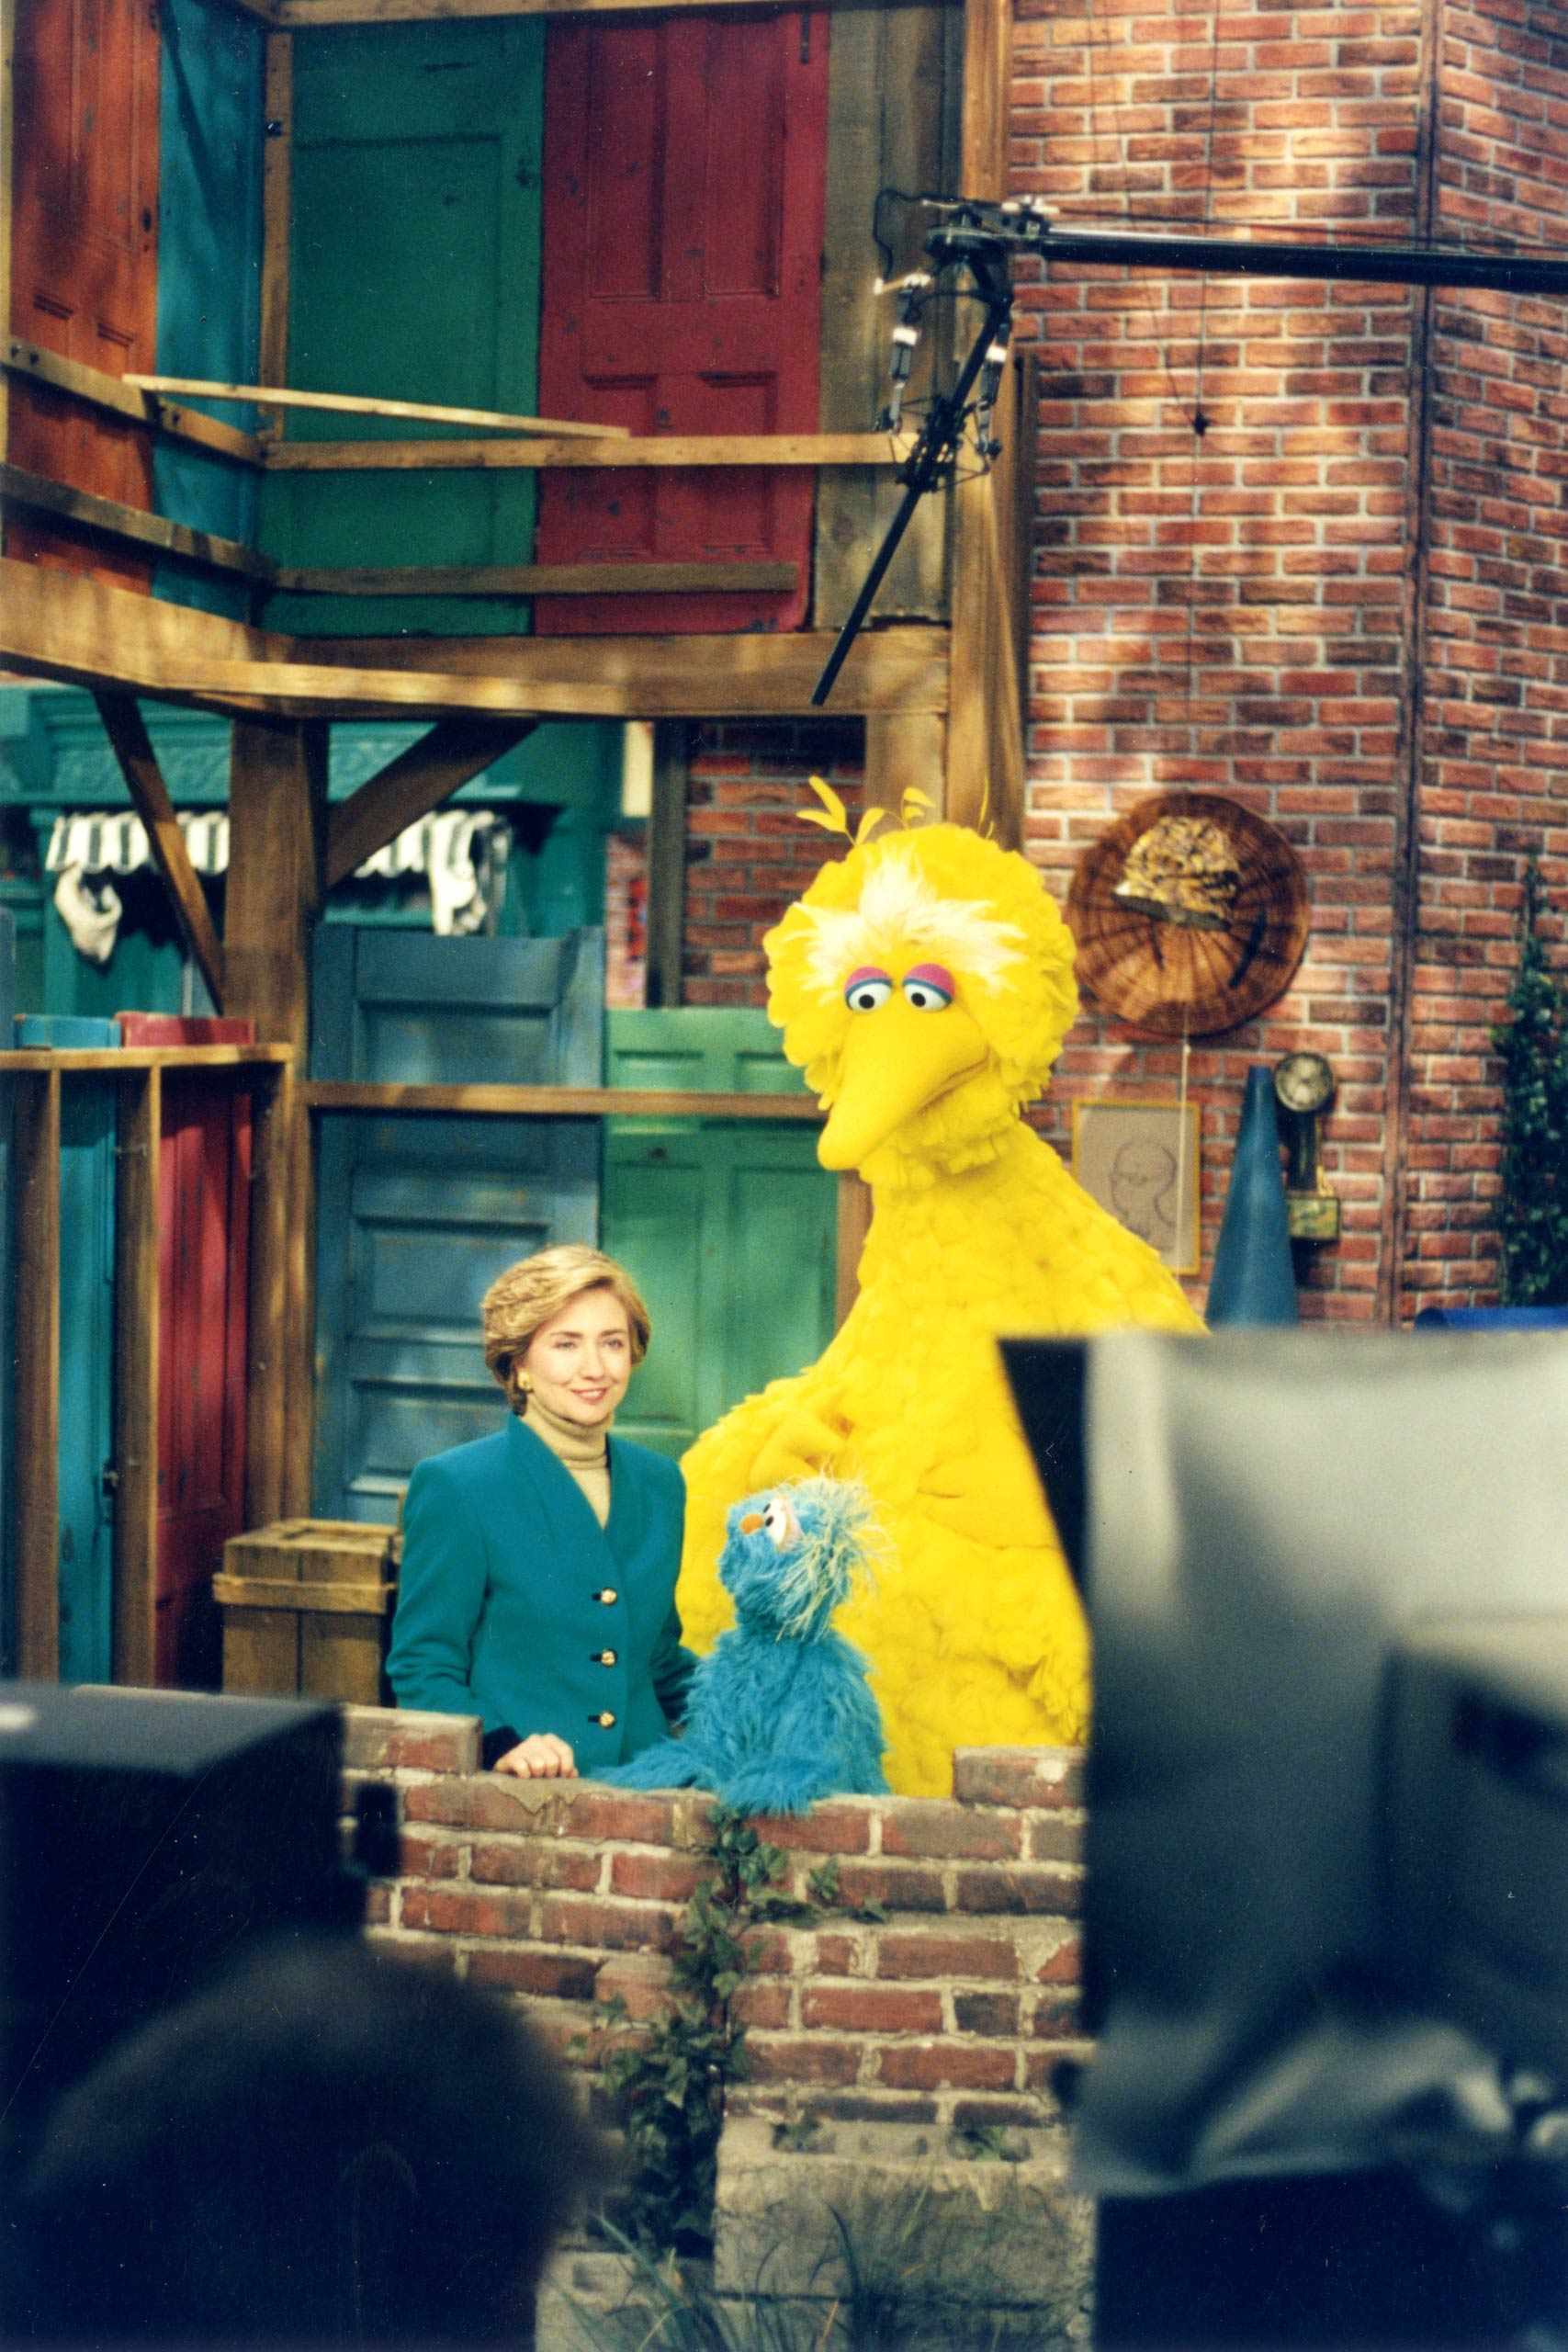 Caroll Spinney with First Lady Hillary Clinton on <i>Sesame Street</i>. Spinney has worked with all the first ladies since the Nixon administration.